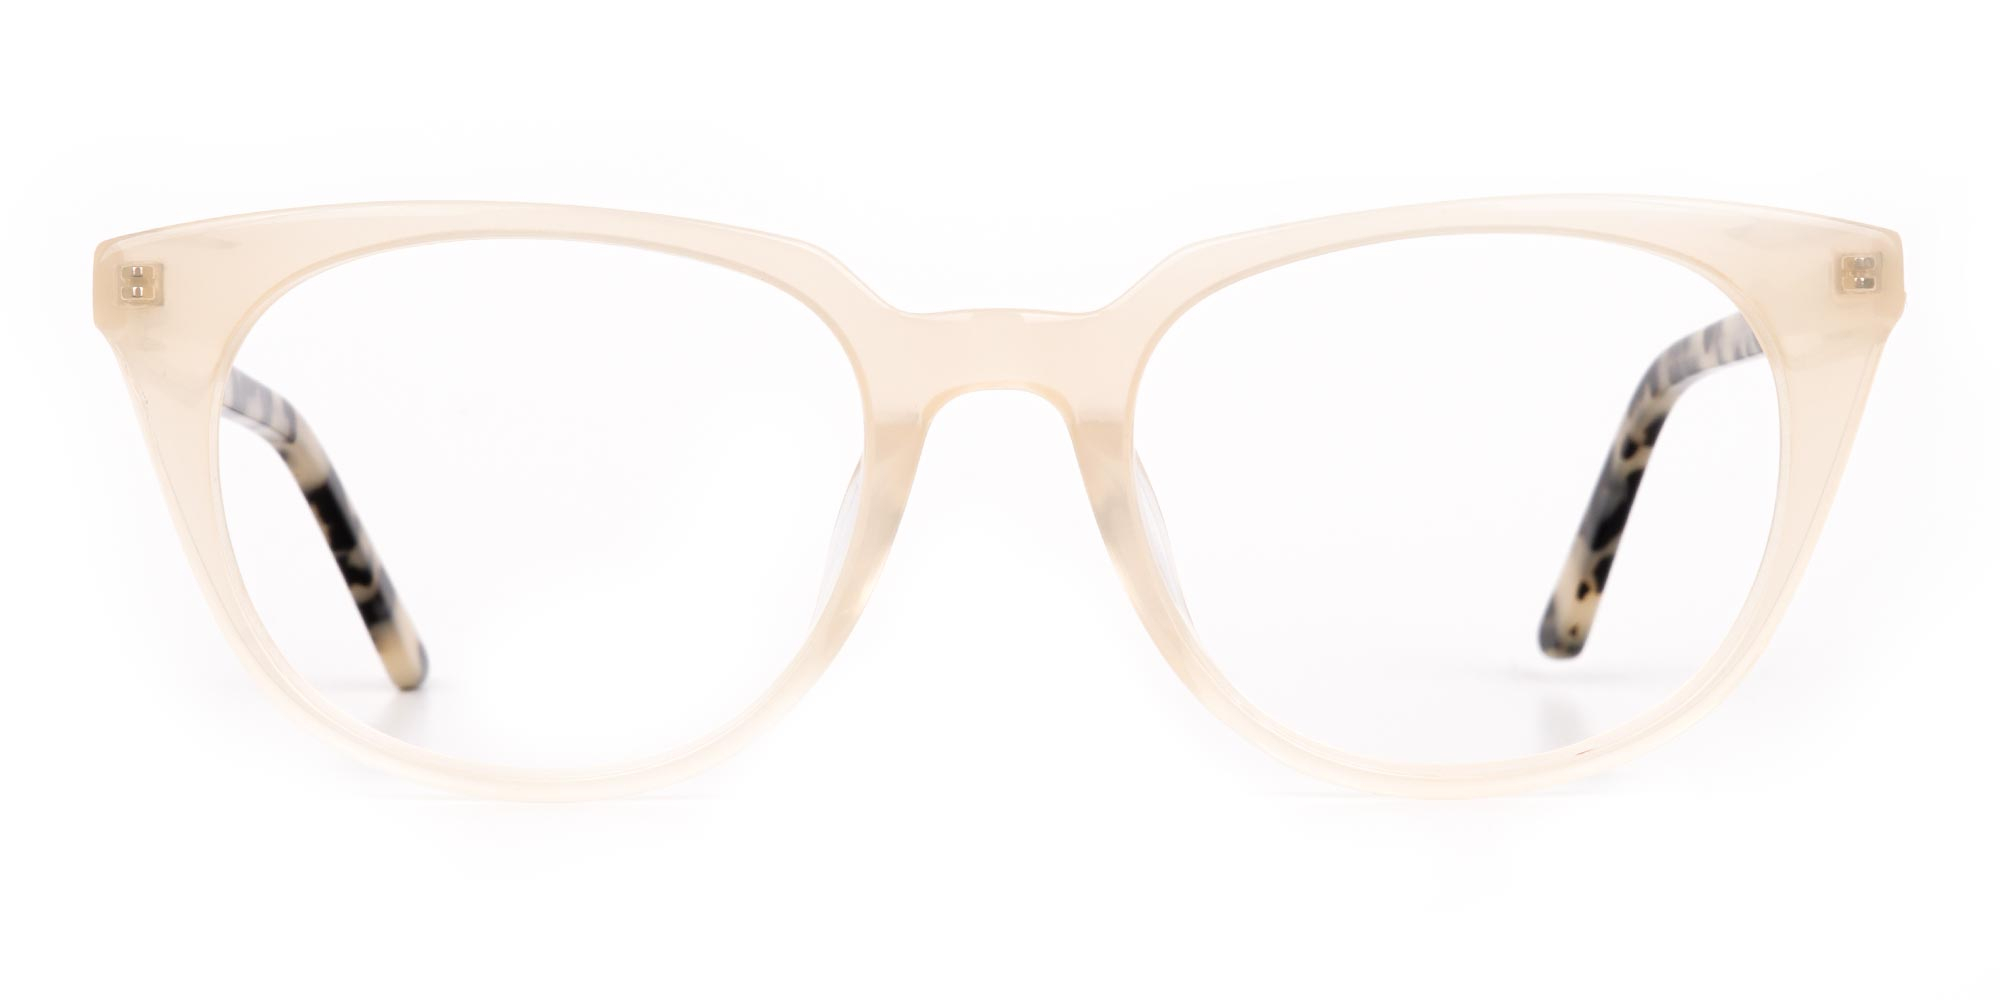 Creamy Brown Translucent Glasses Trends